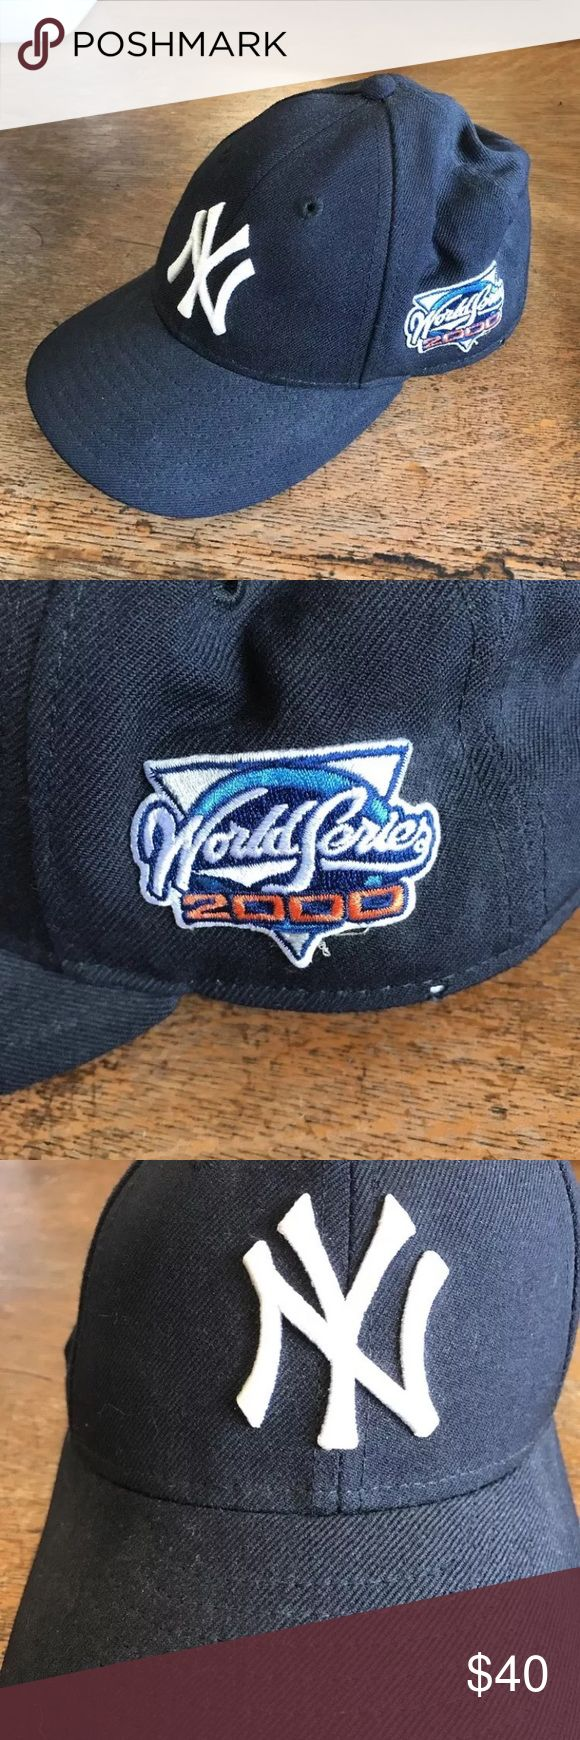 Collectors 2000 Yankees World Series fitted cap Normal wear, inside & out as seen in above pics. NEW ERA 2000 World series  Yankee baseball hat. New Era Accessories Hats